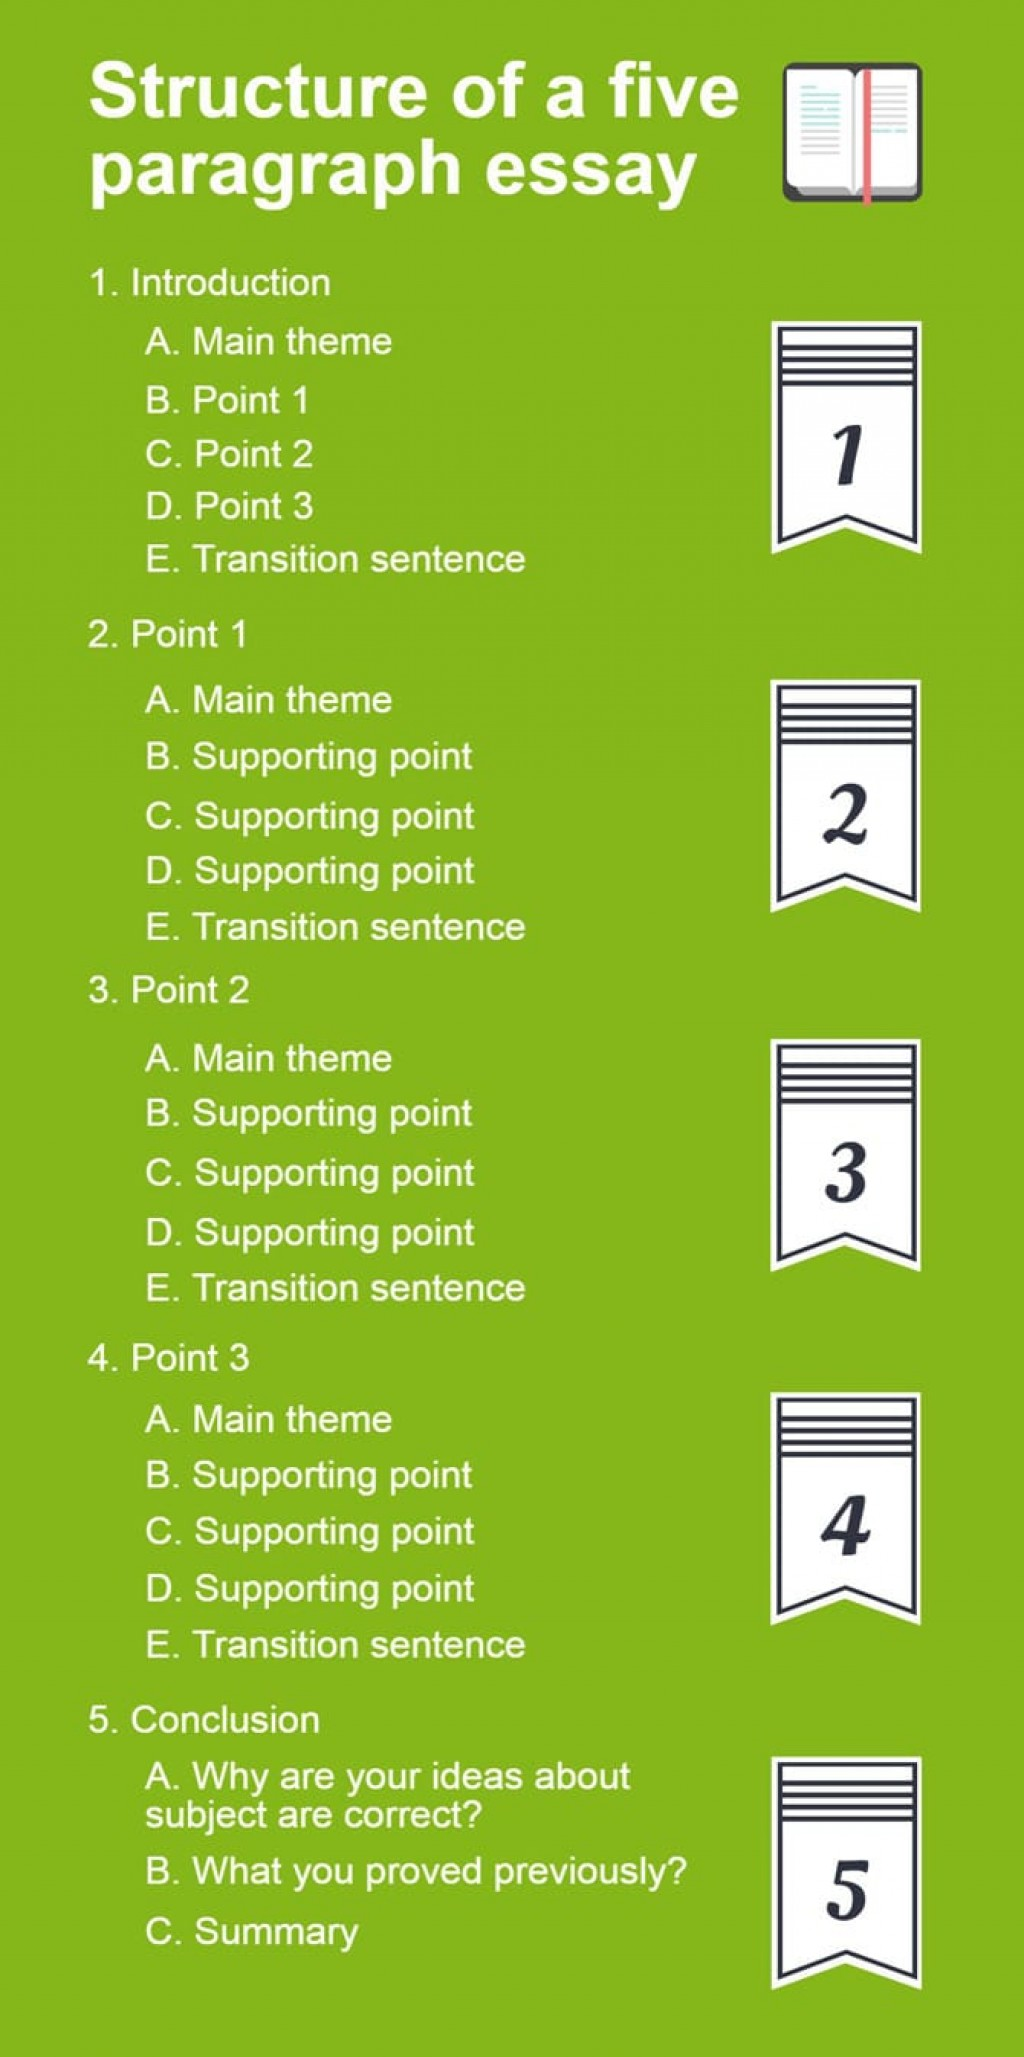 005 Essay Example Structure Of Perfect Paragraph Easy Way To Write Excellent An Argumentative How Analytical In Ielts Task 2 Large